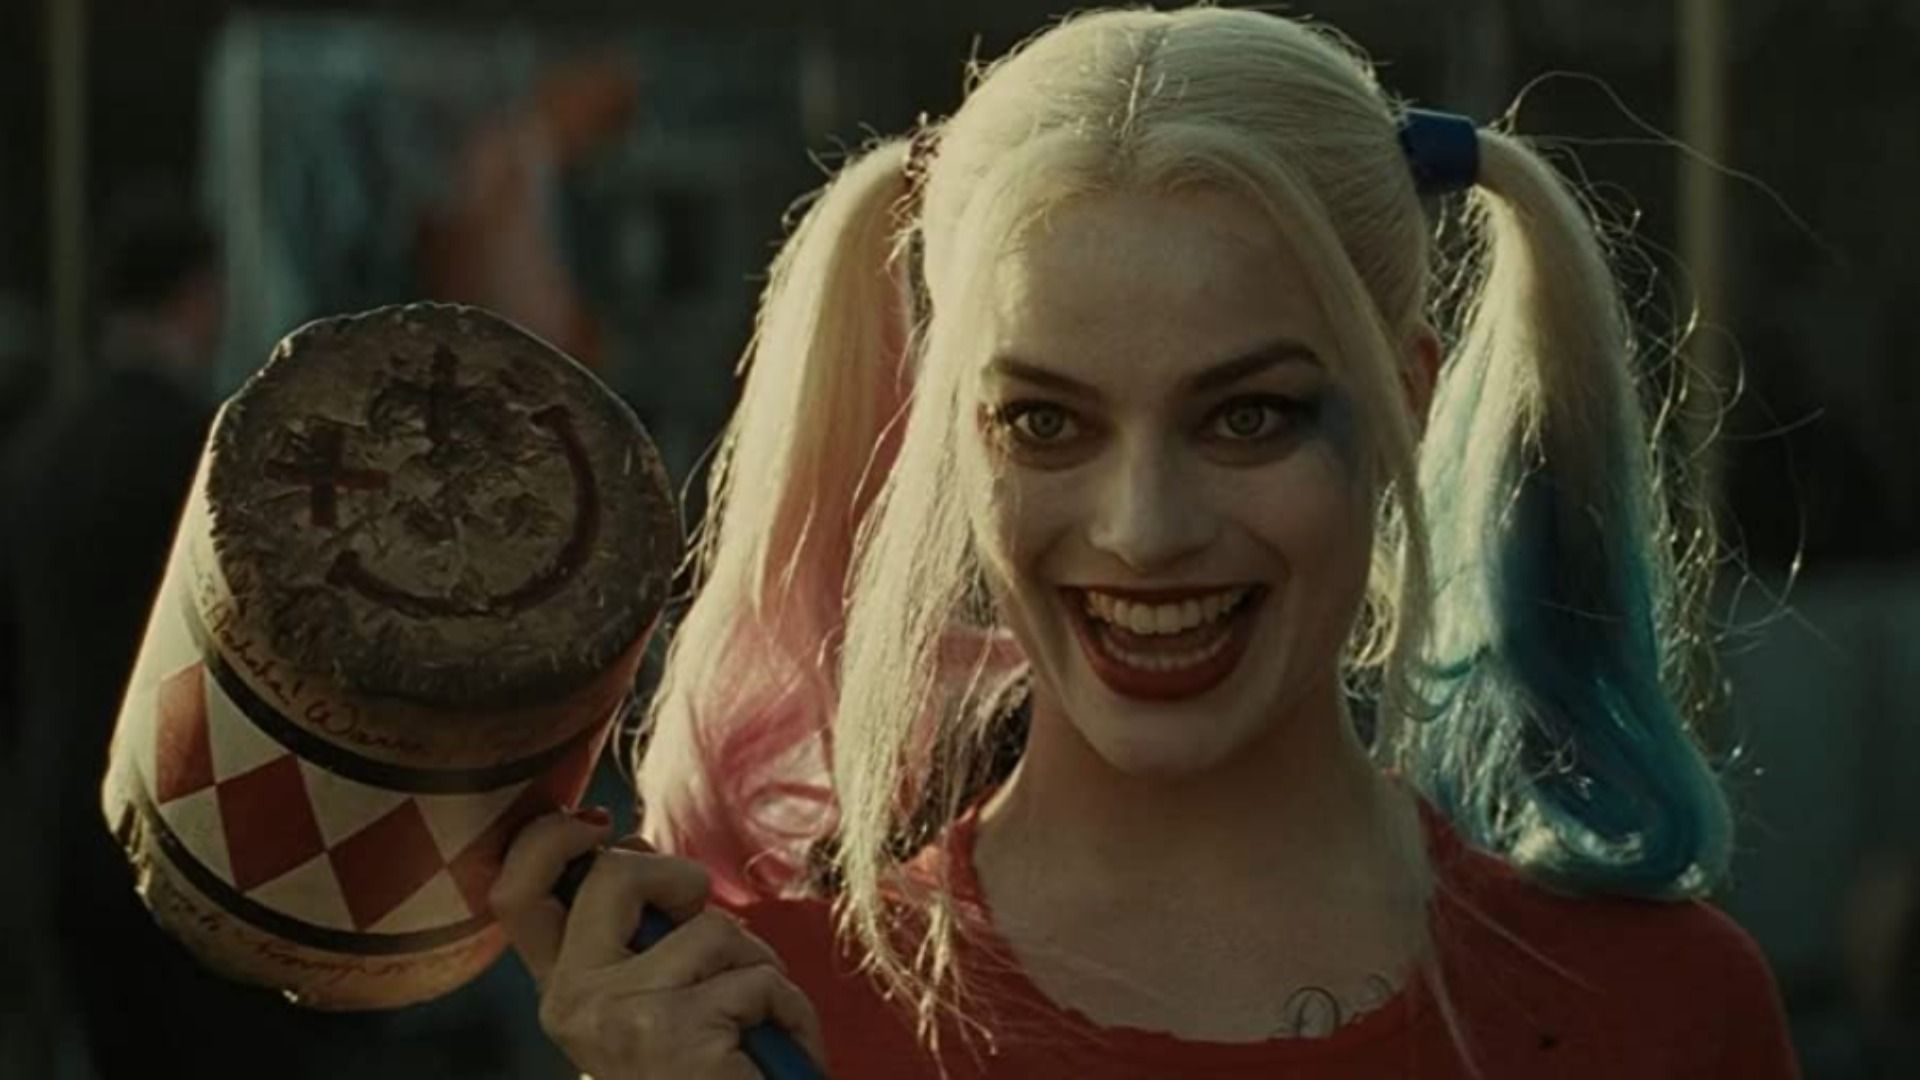 The Suicide Squad director James Gunn confirms the movie's rating